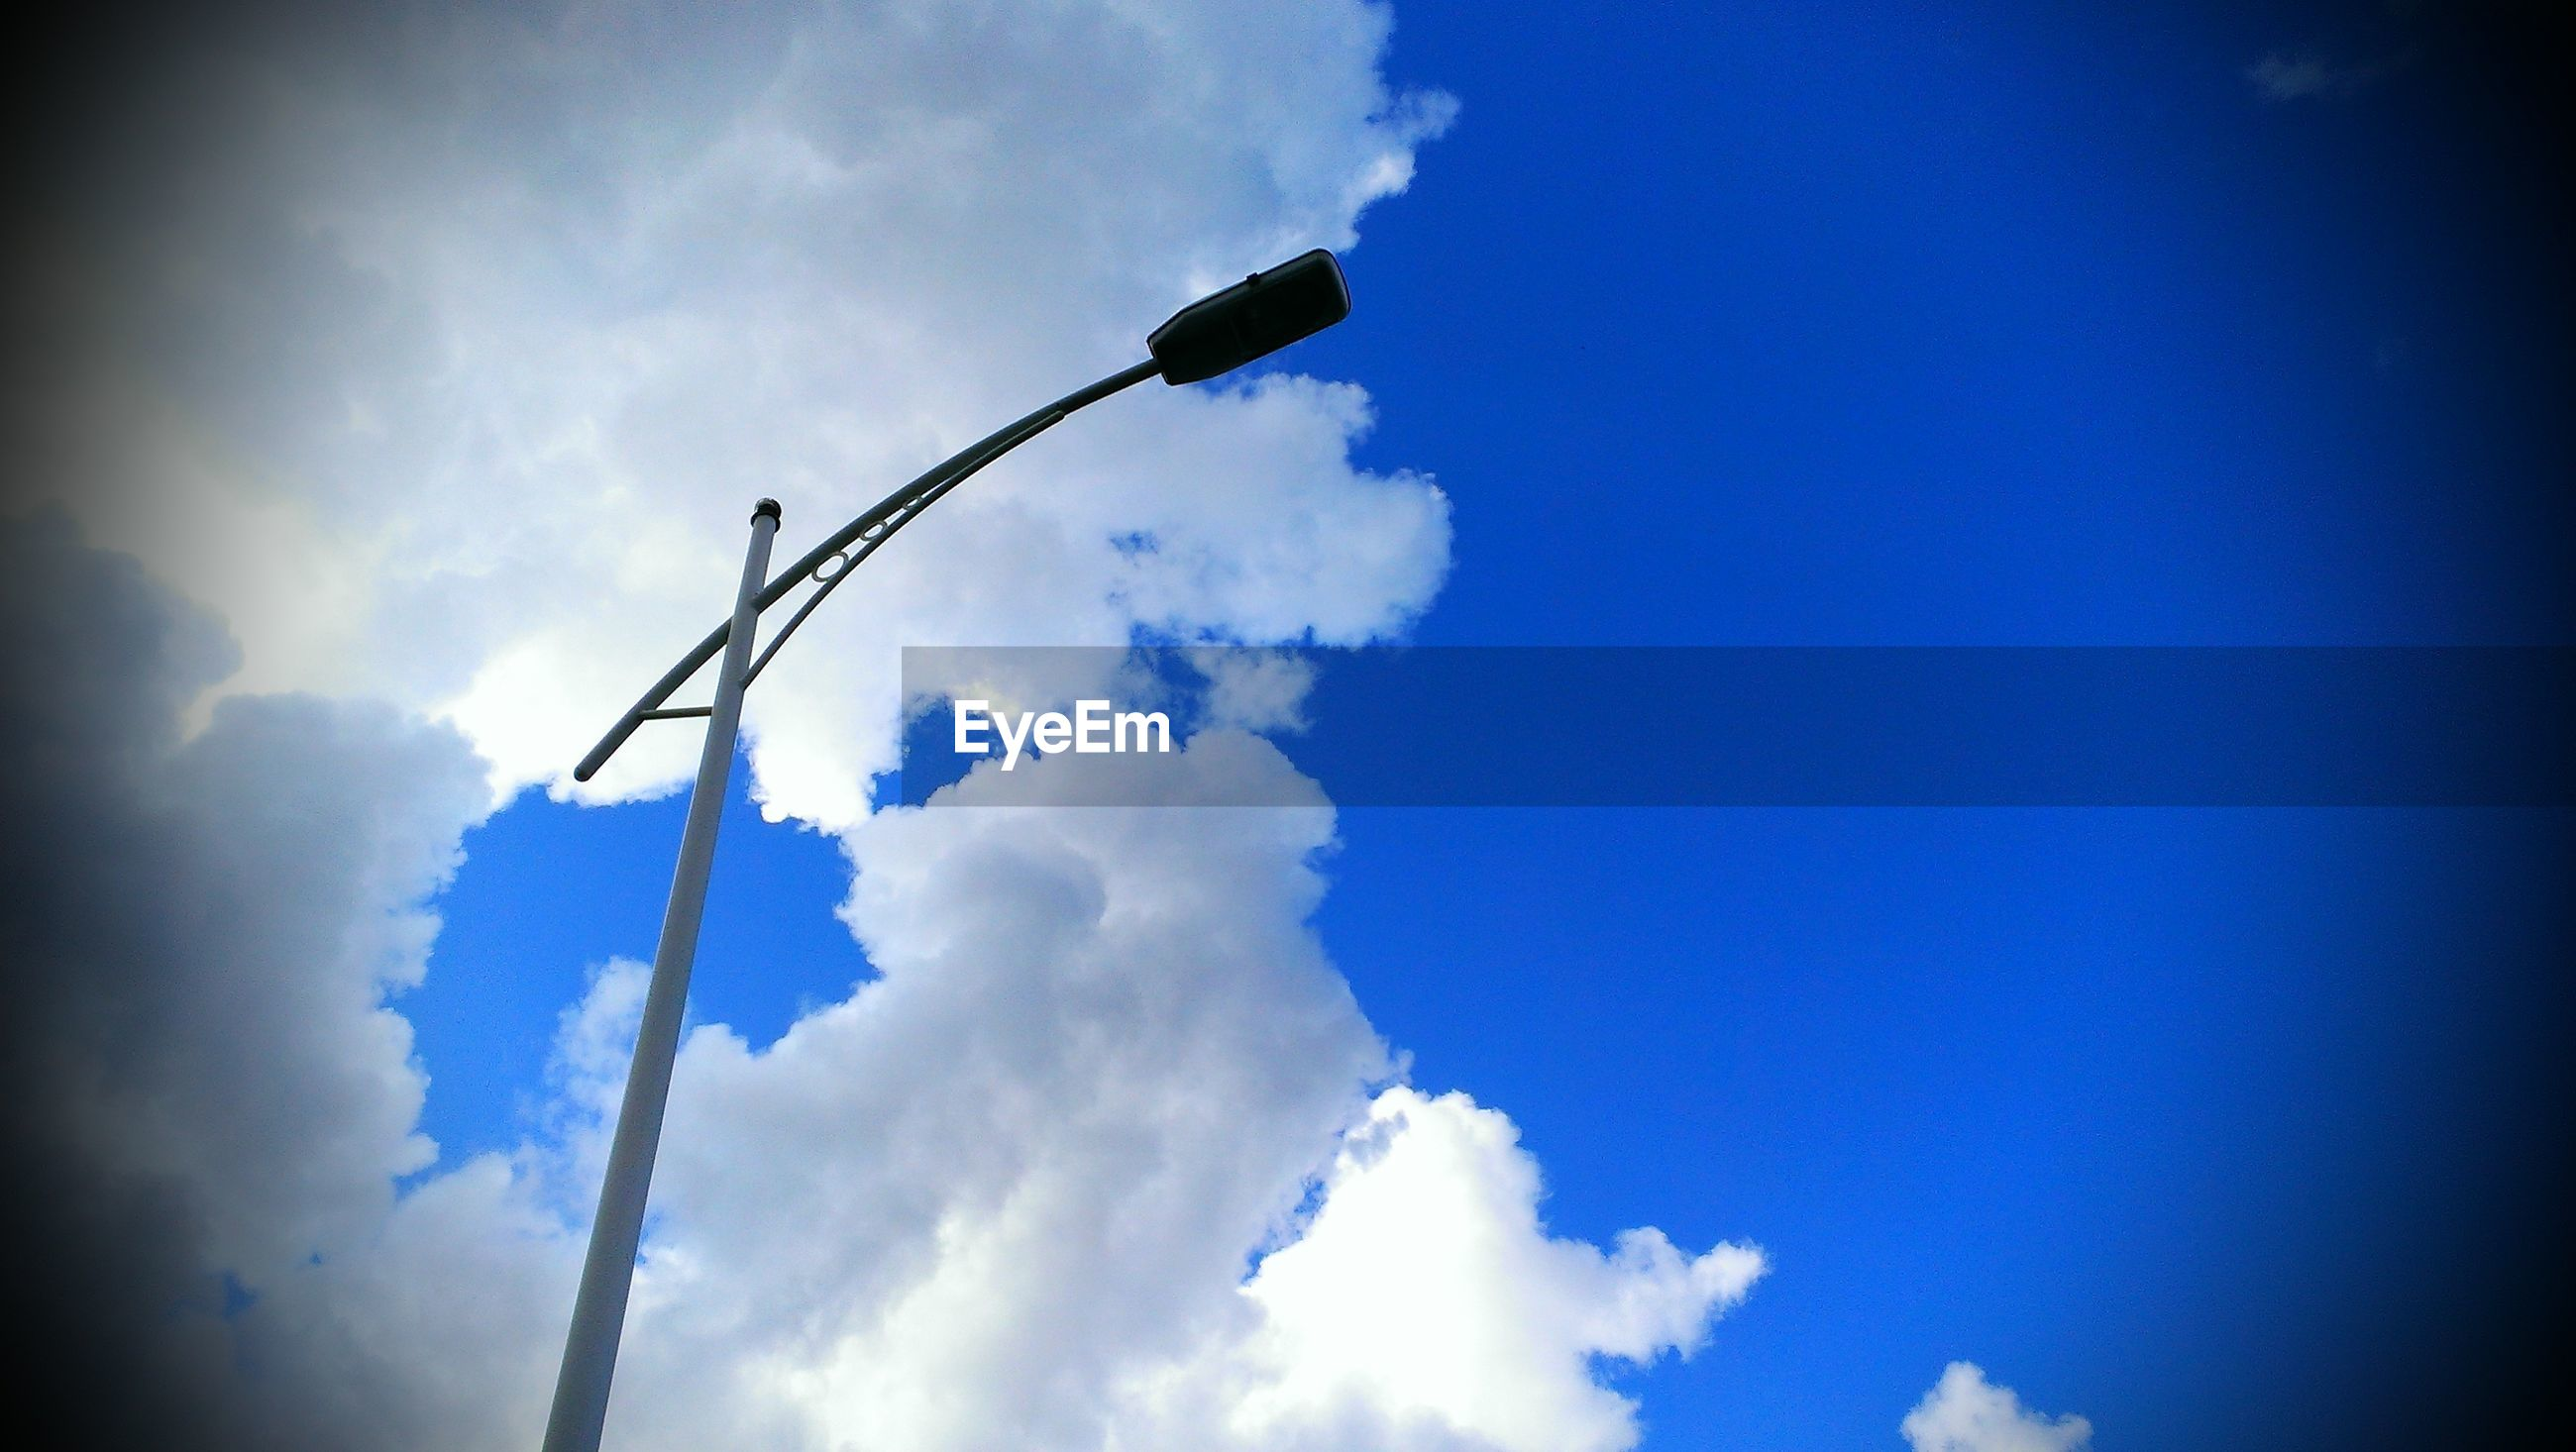 Low angle view of street light against white clouds and blue sky